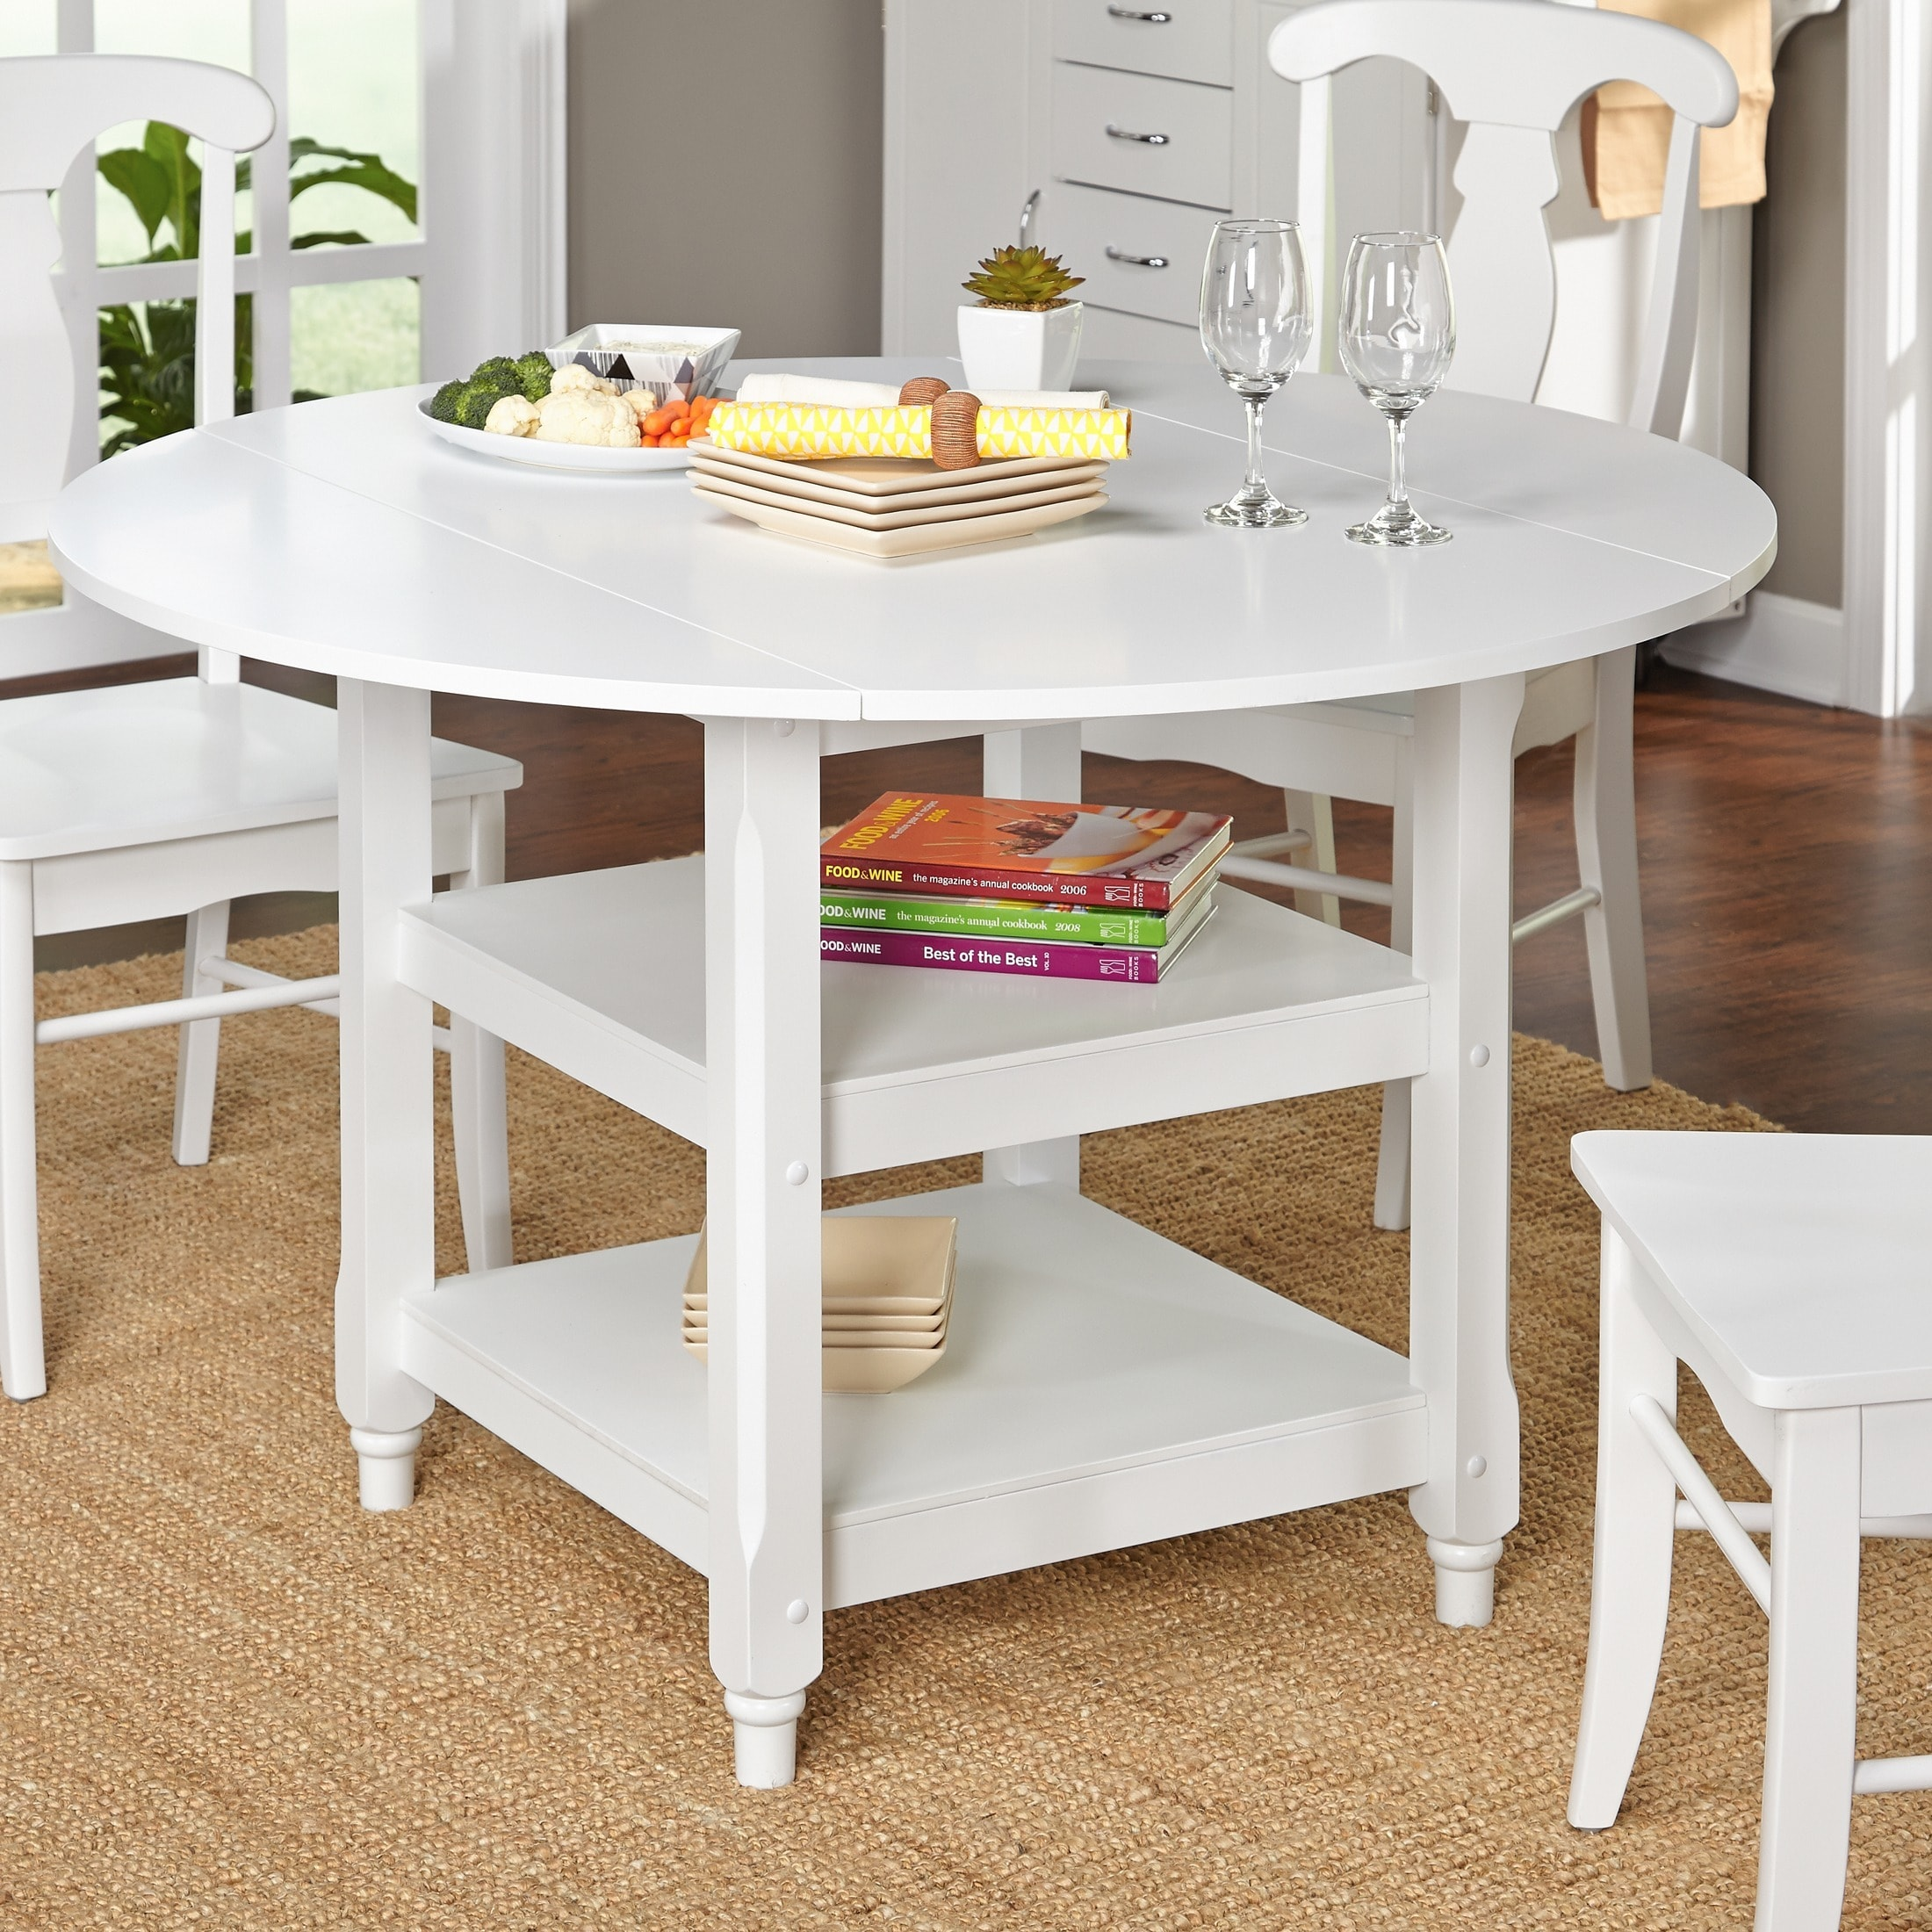 Living Room Dining Table: Simple Living Cottage White Round Dining Table